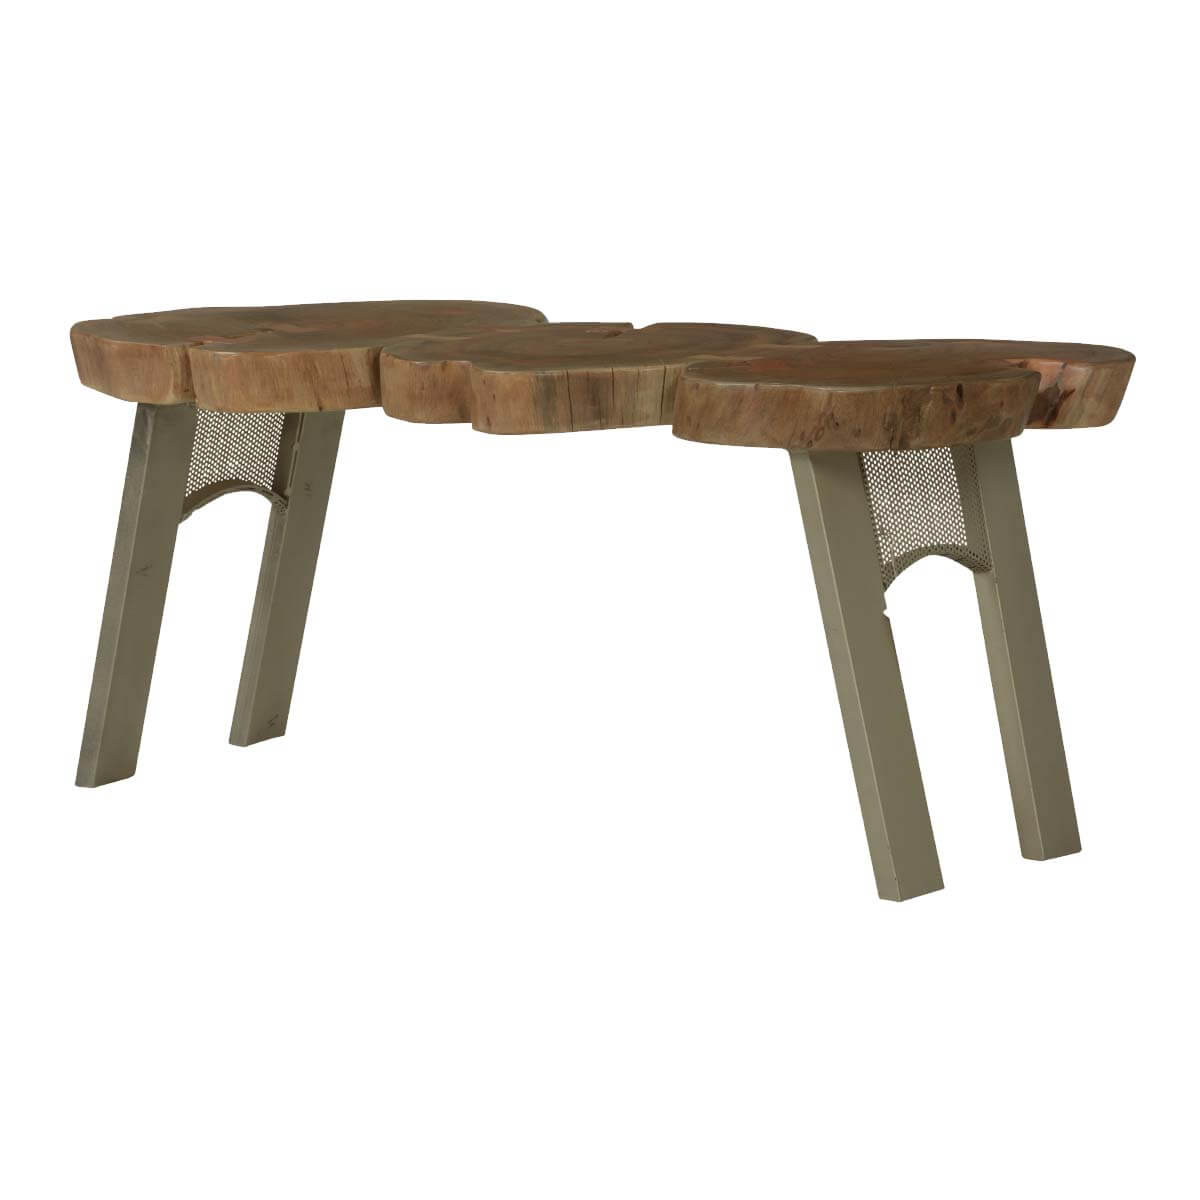 Wood Stump Coffee Table Coffee Table From Tree Stump Home Organic Stump Coffee Table